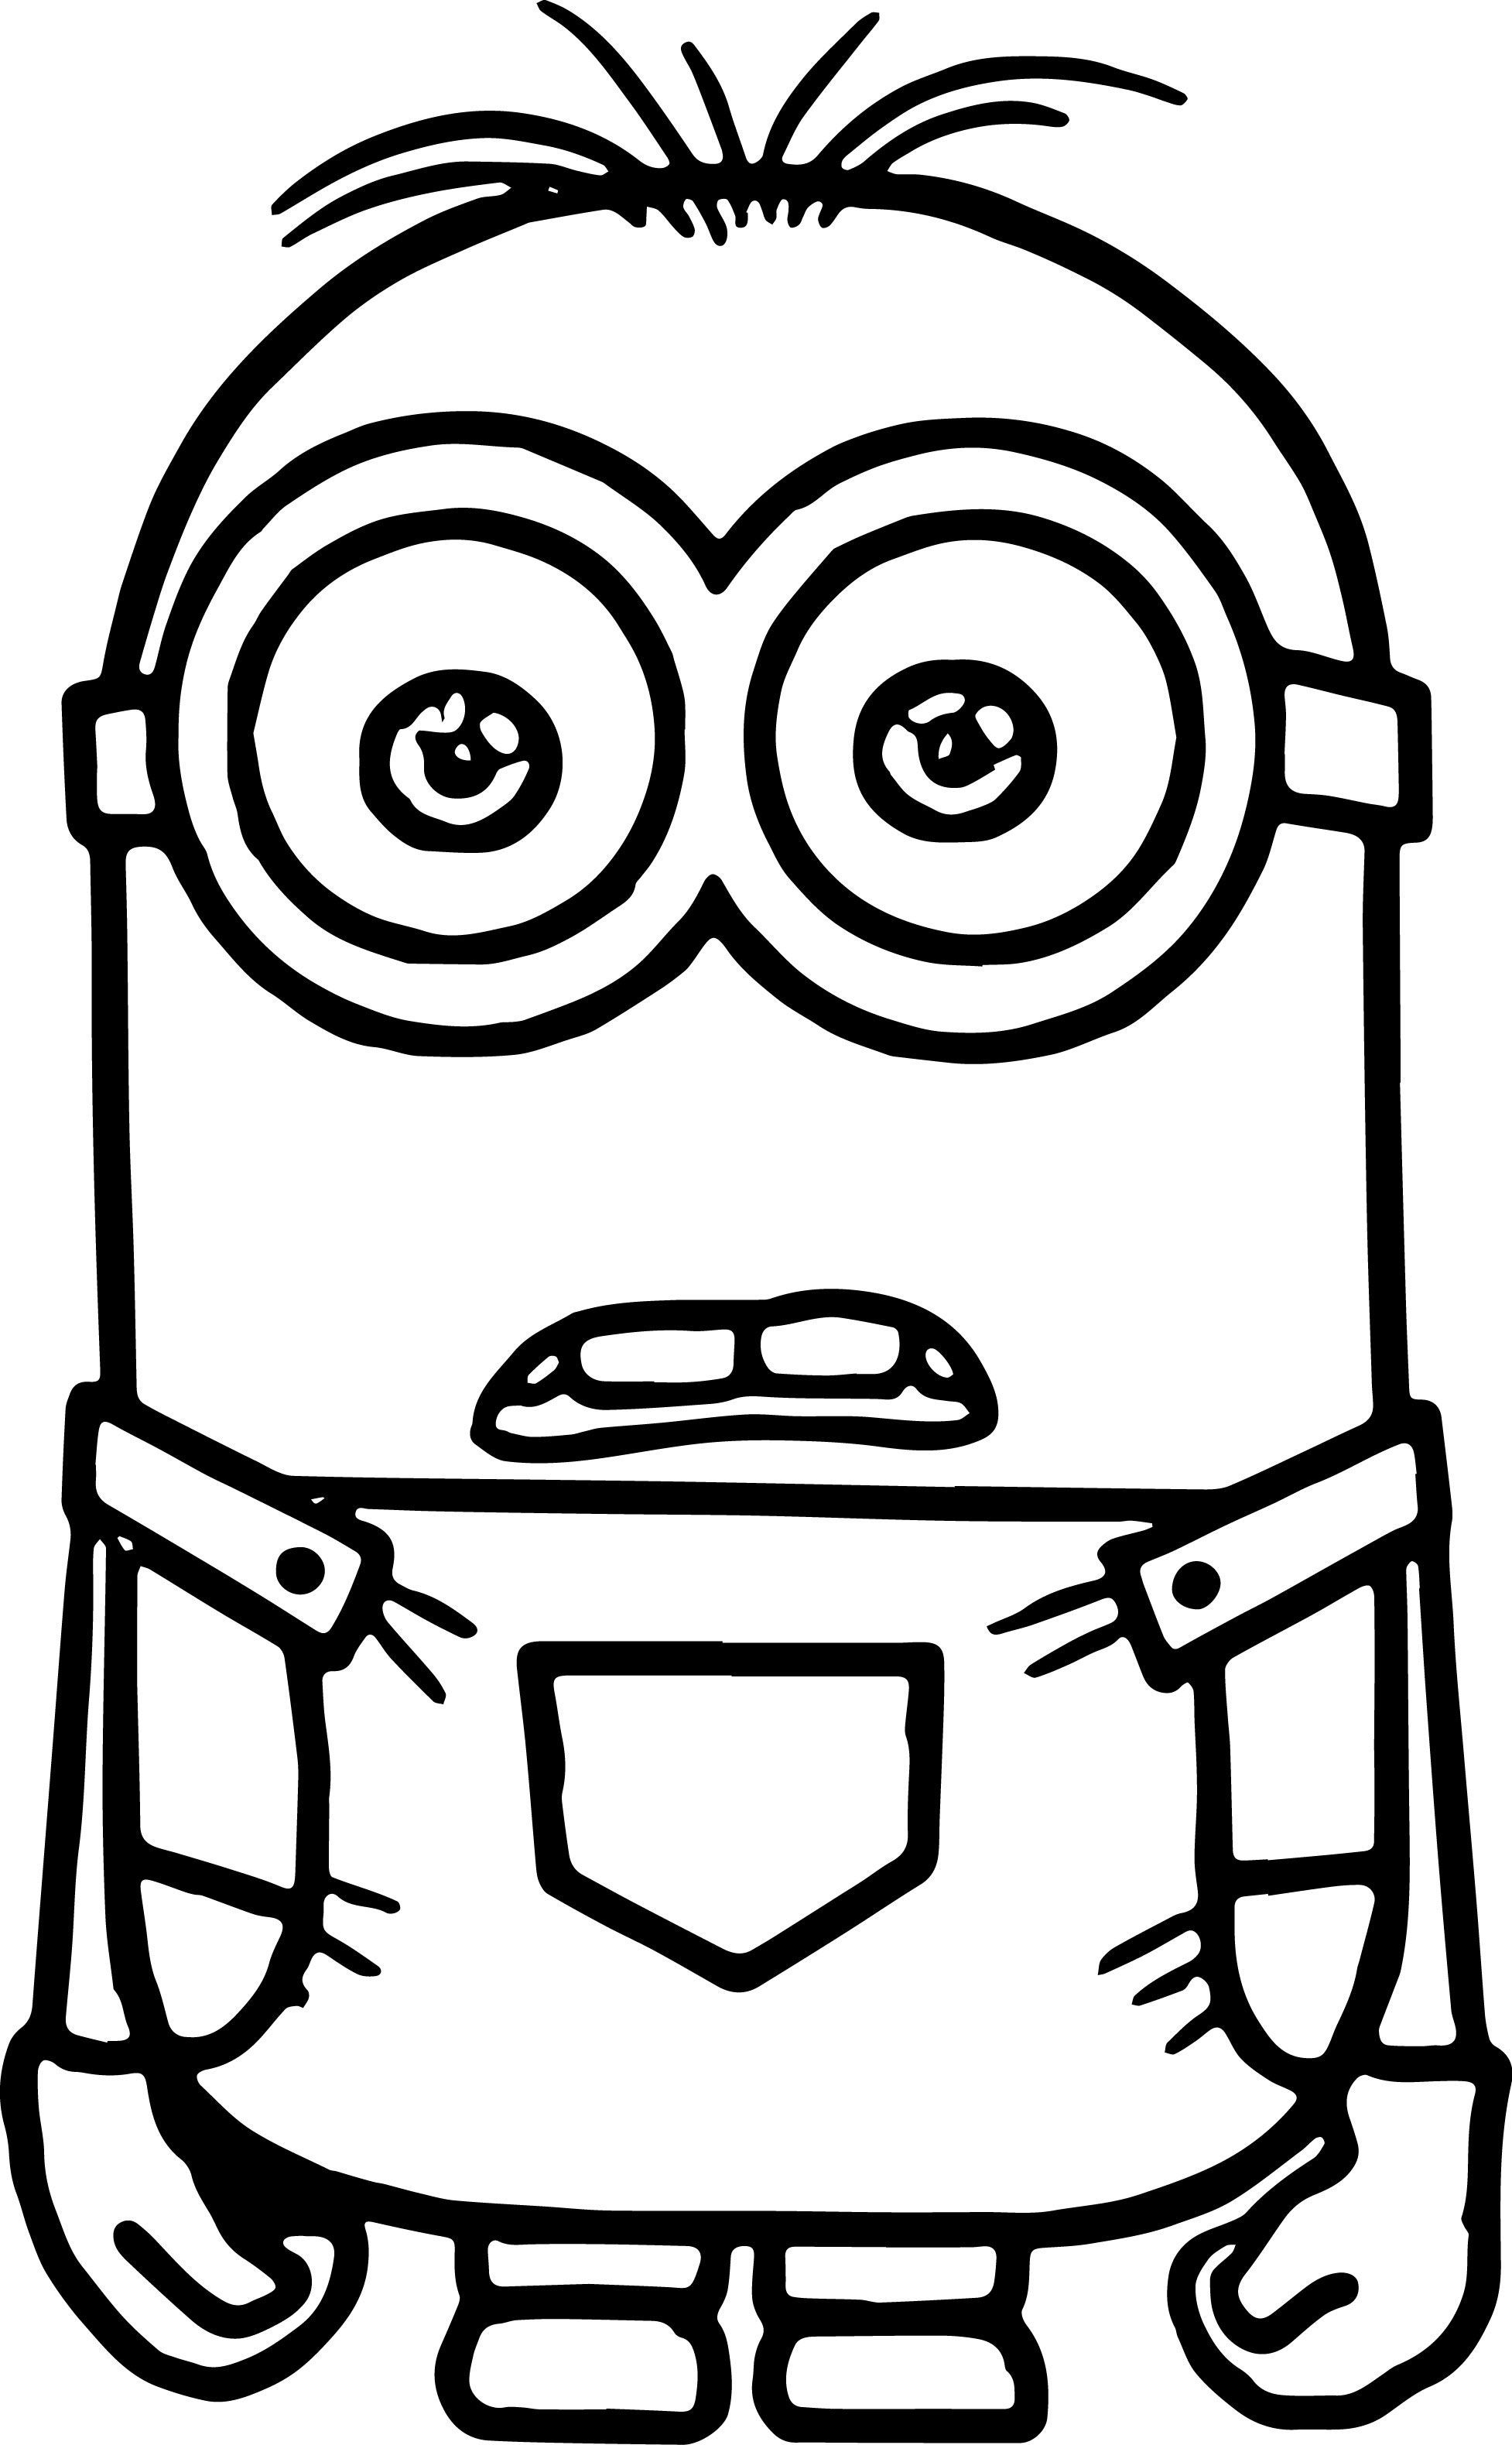 Minion Coloring Pages For 2019 Http Www Wallpaperartdesignhd Us Minion Coloring Pages For Minion Coloring Pages Disney Coloring Pages Minions Coloring Pages